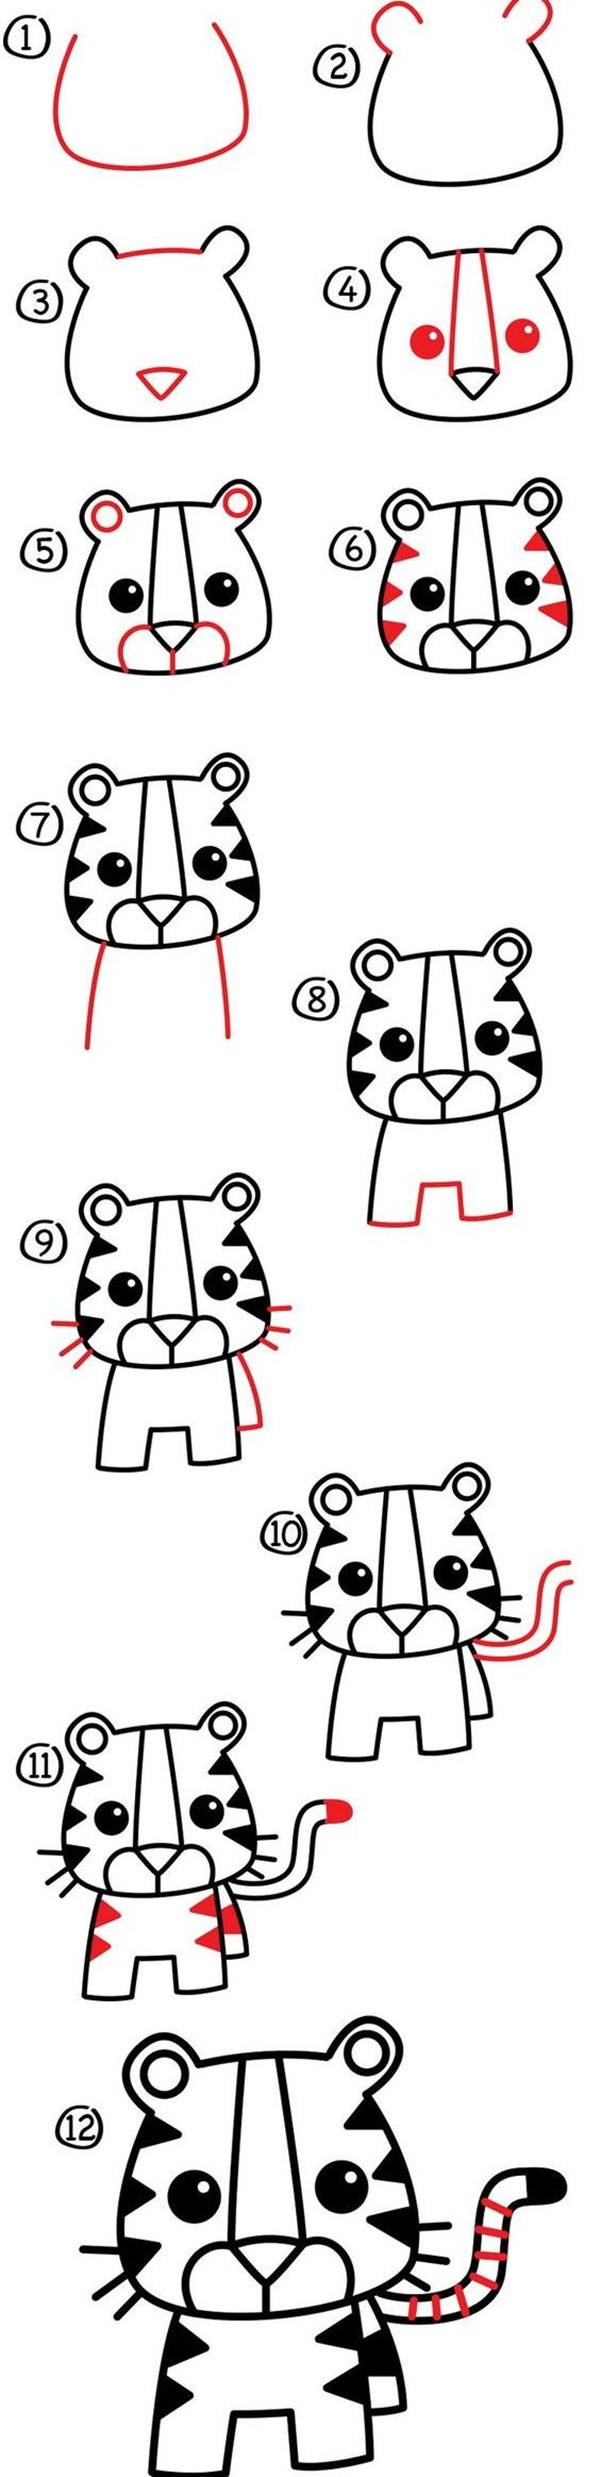 easy-diy-cartoon-drawings-for-kids5